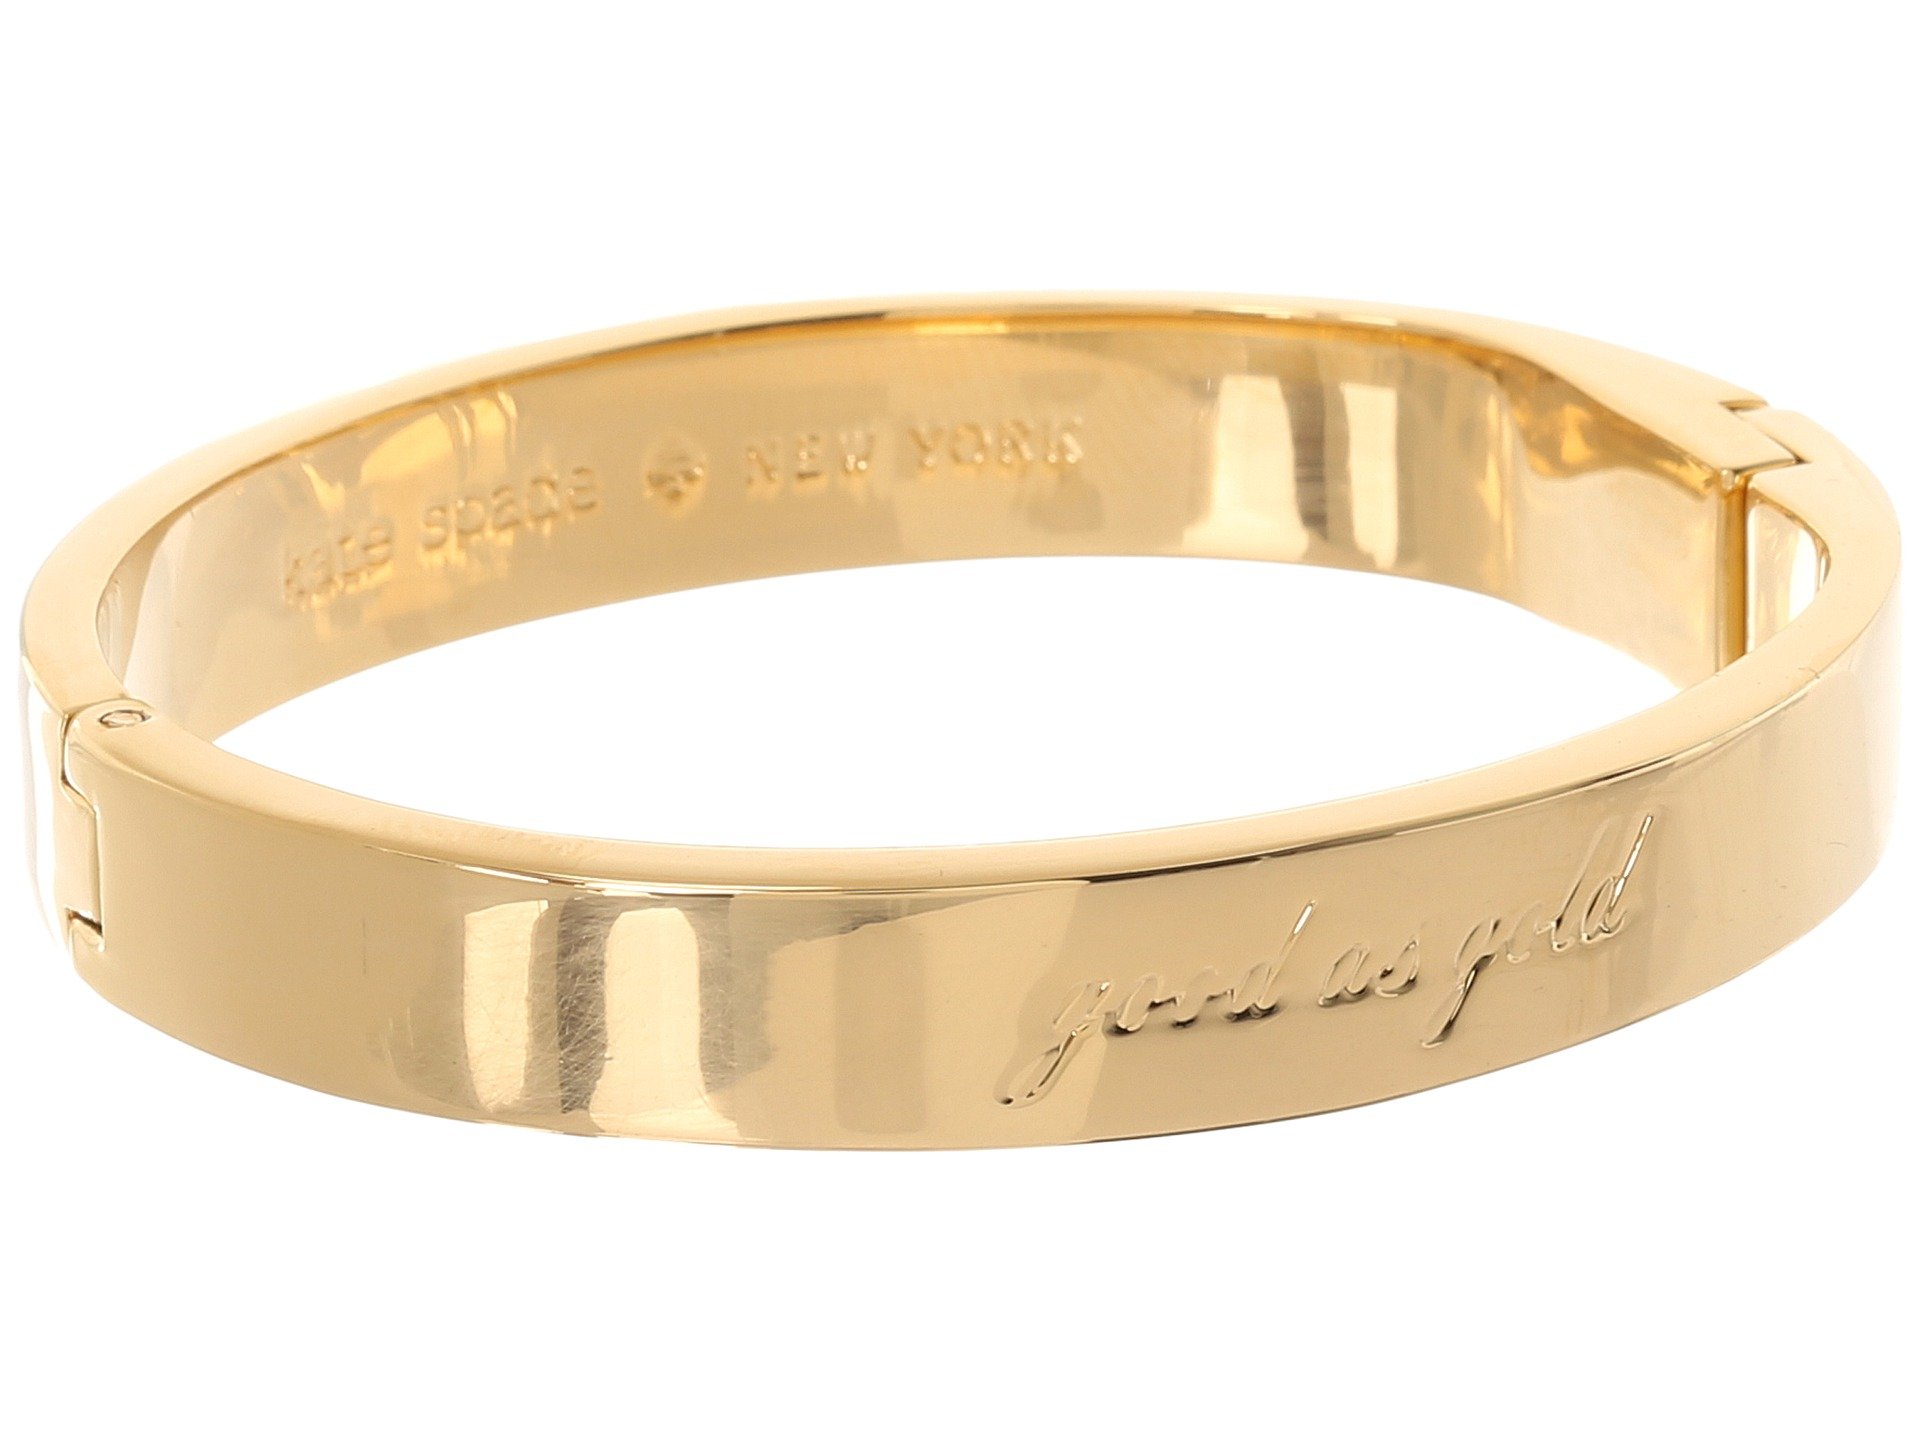 Gallery Previously Sold At Zos Women S Gold Bangles Kate Spade